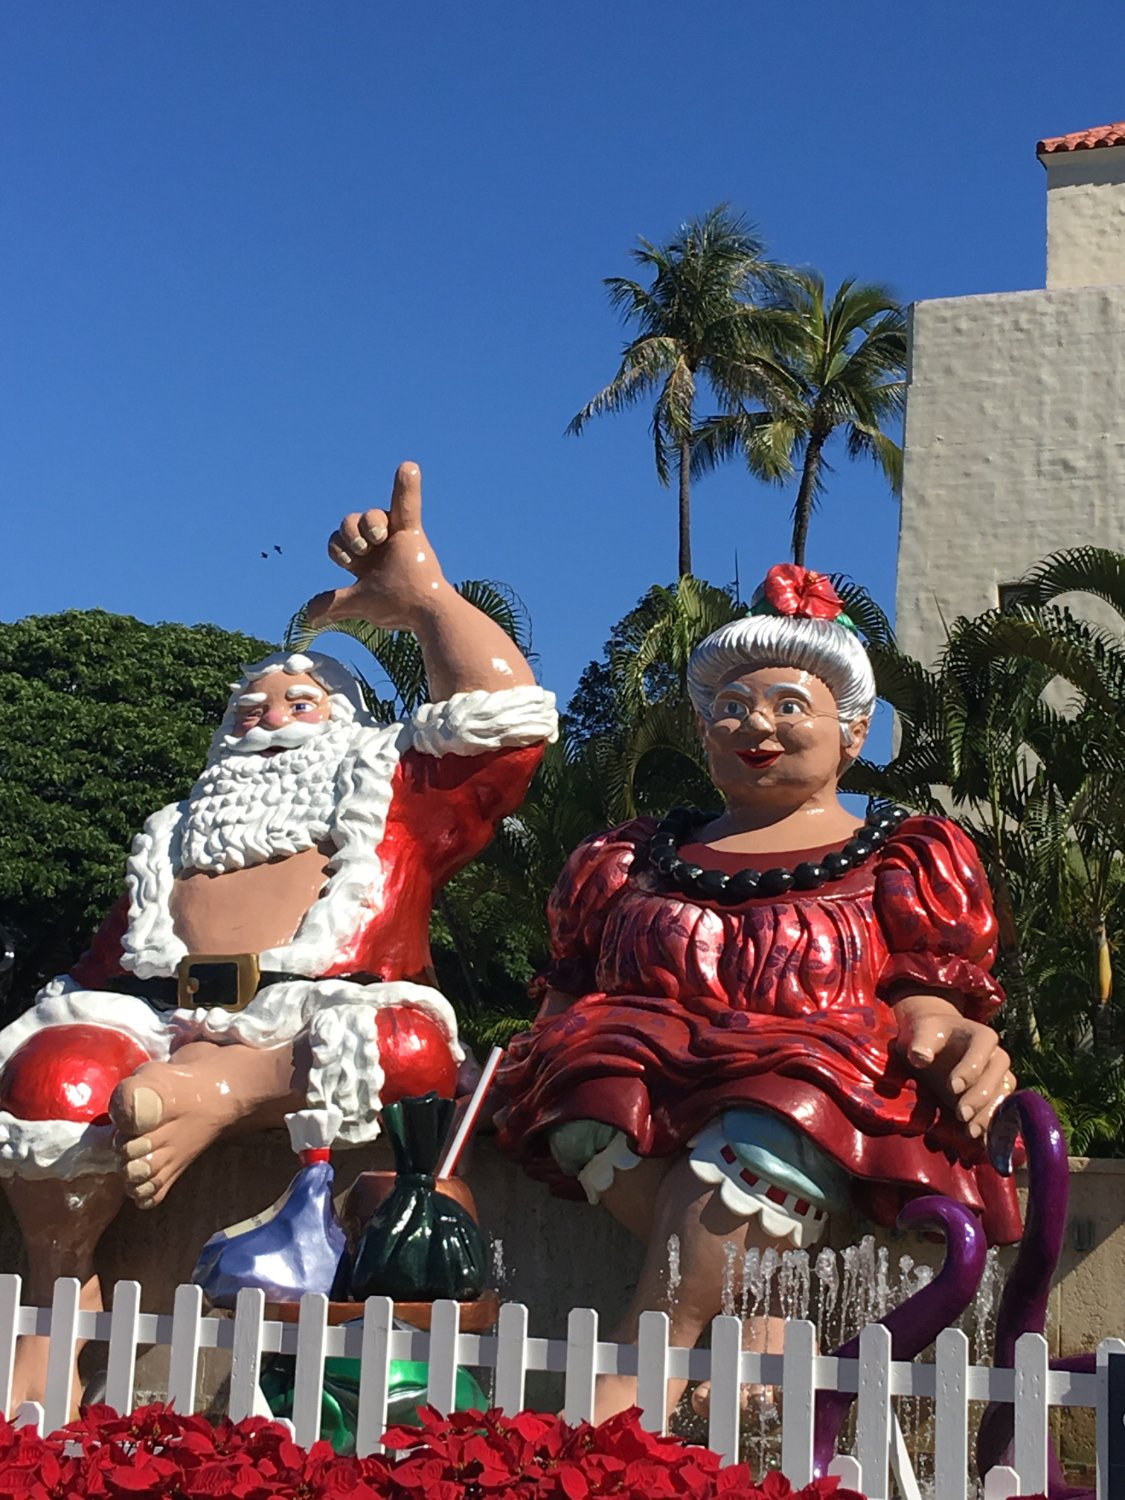 Oahu is all about Christmas and making the holiday very culturally rich